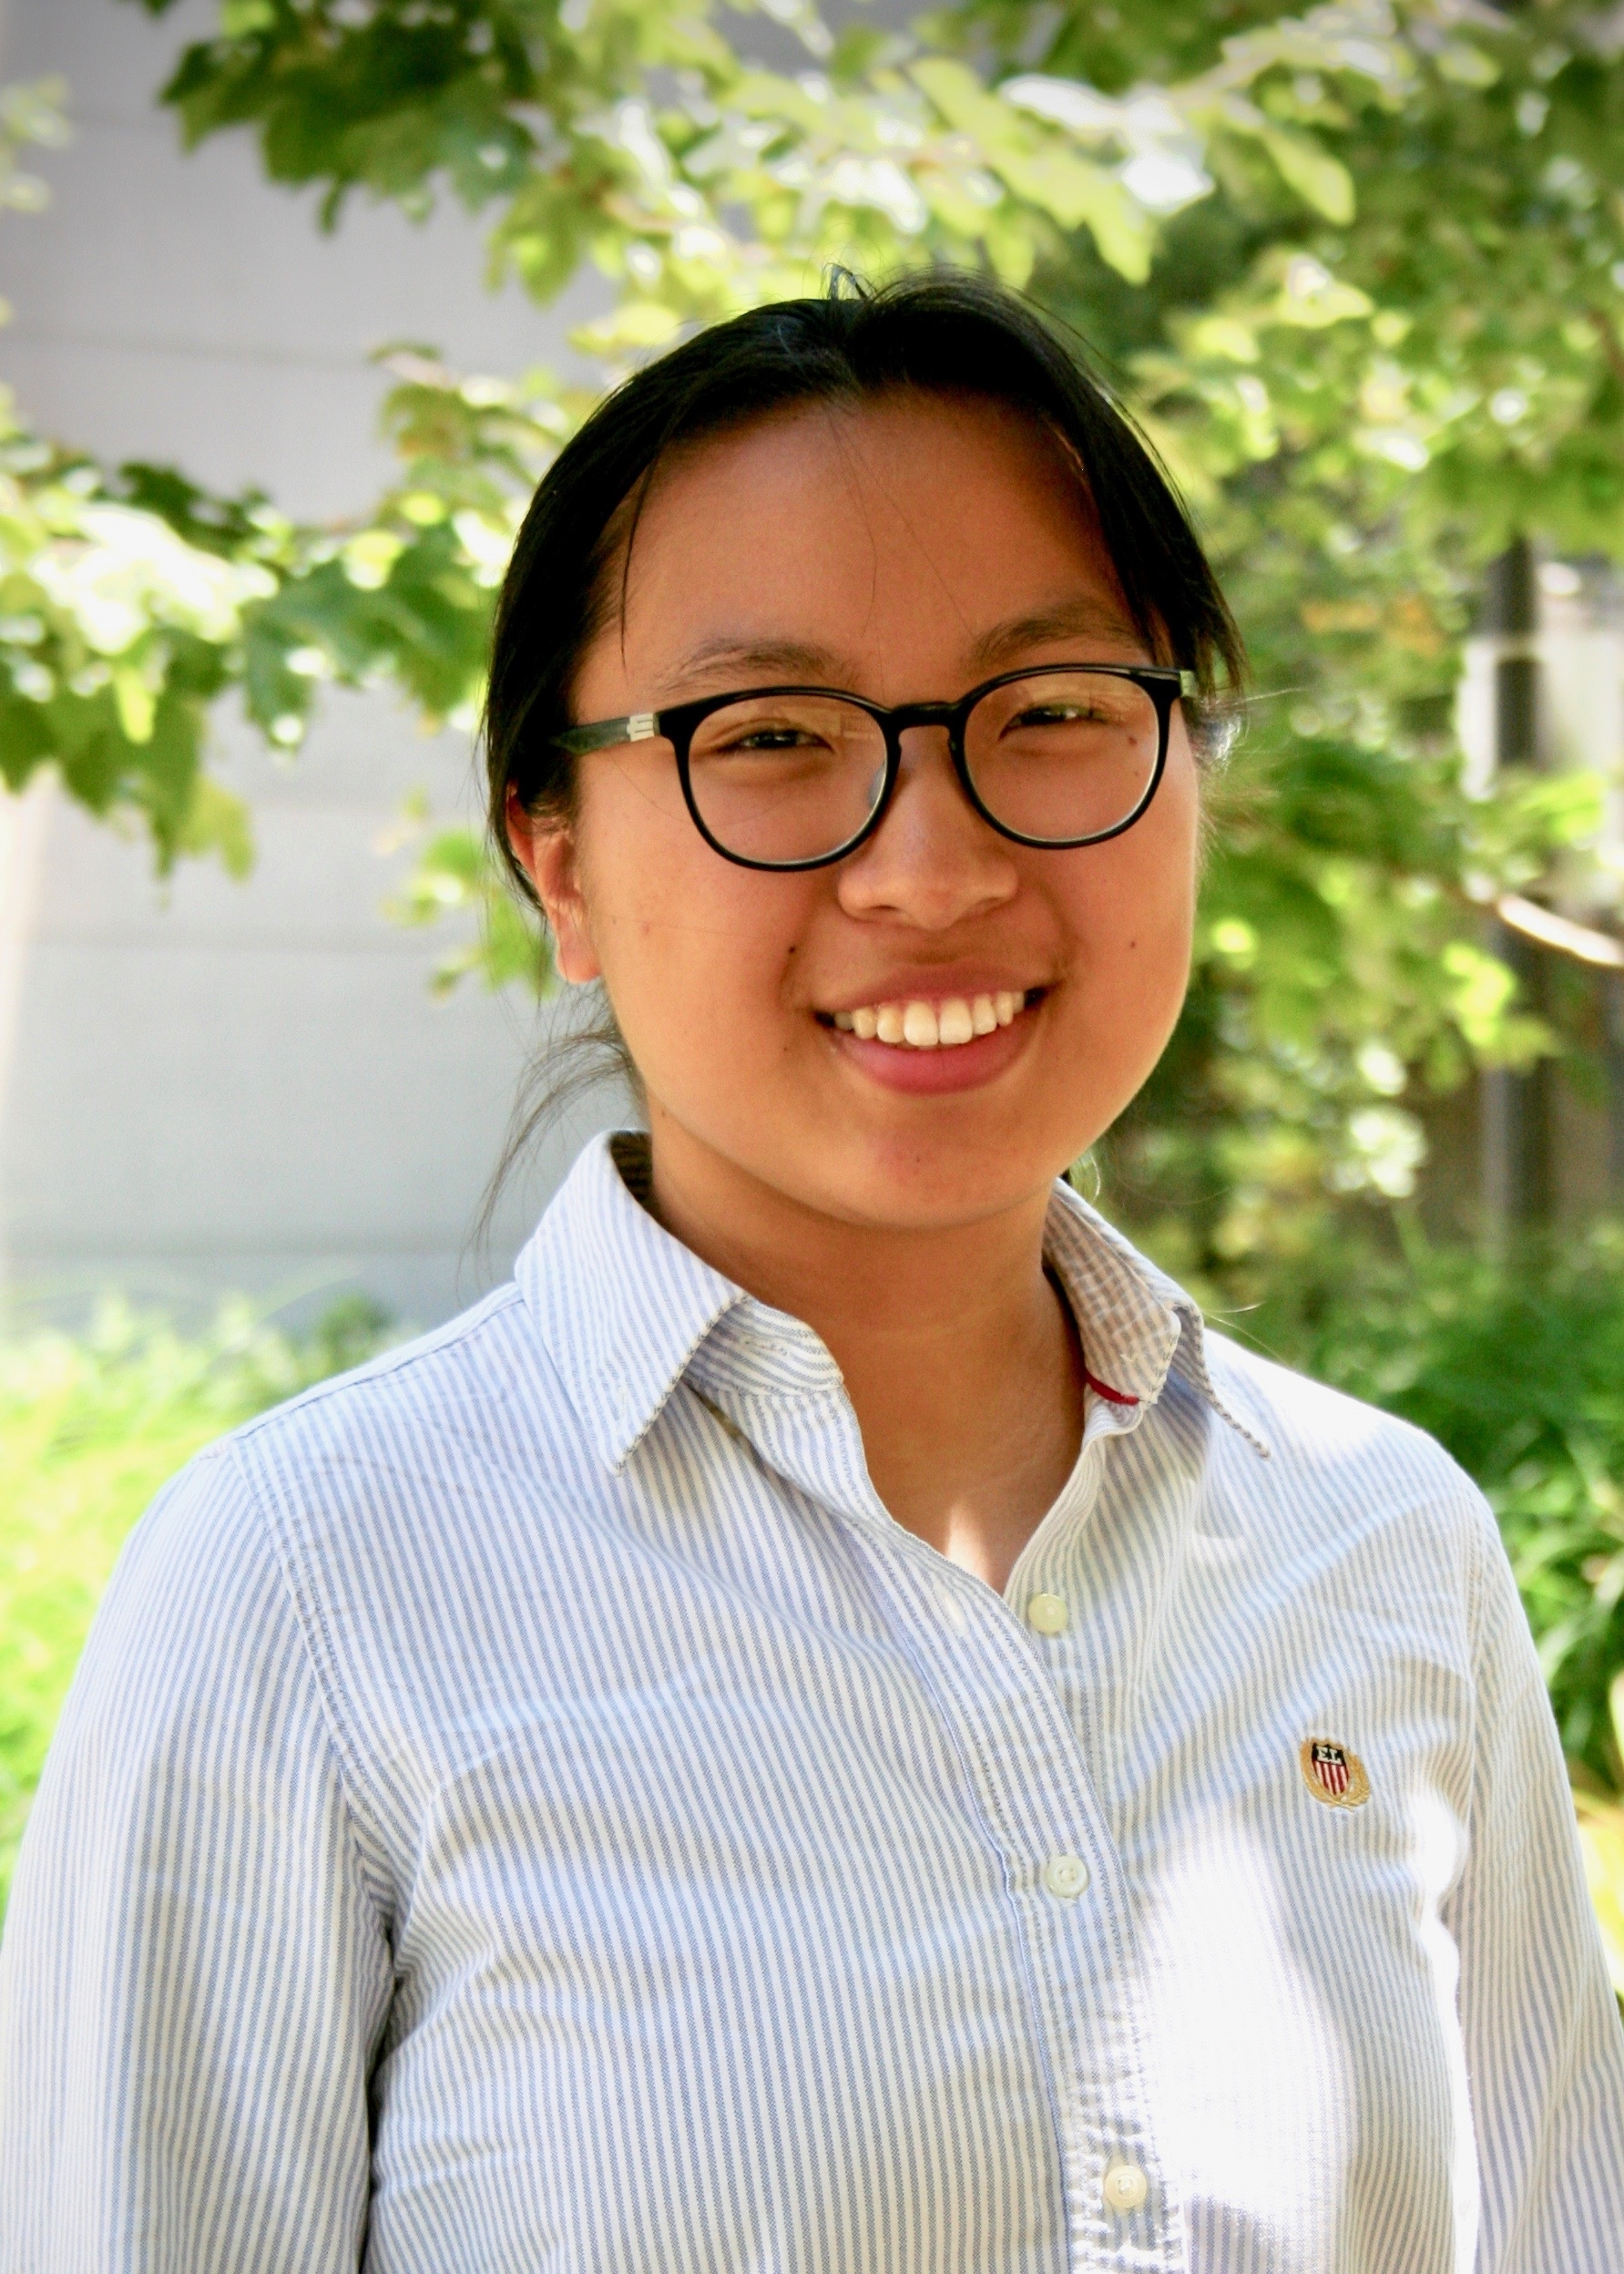 Ran Tao is a third-year anthropology major at UCLA.  Fun fact: She loves baking in her free time and going to yoga classes.